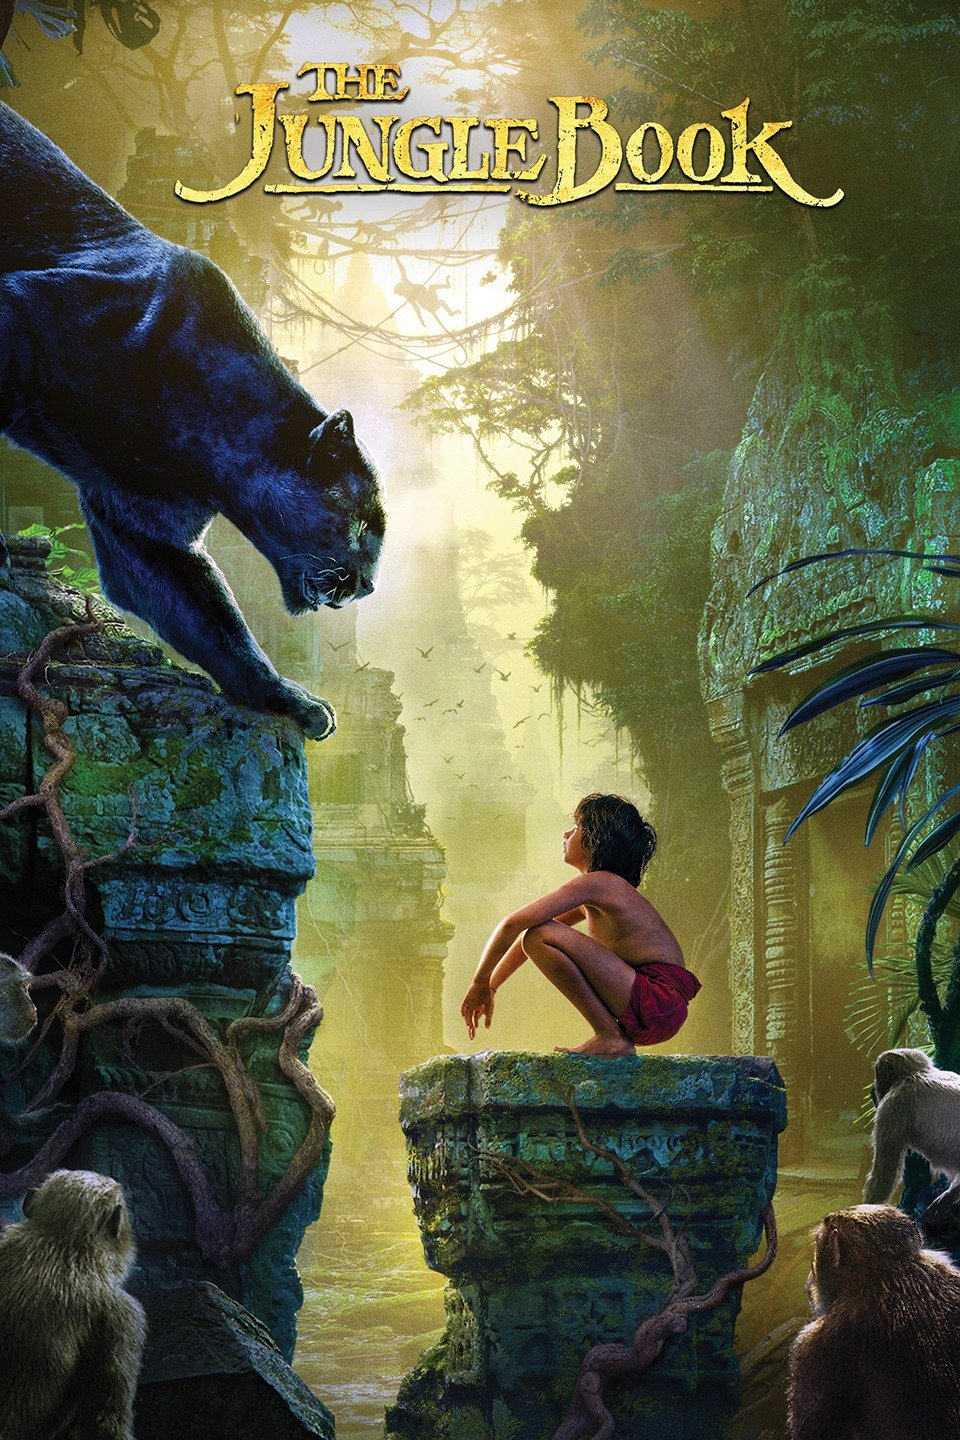 CANCELED - Movies @ Meadows: The Jungle Book (2016)